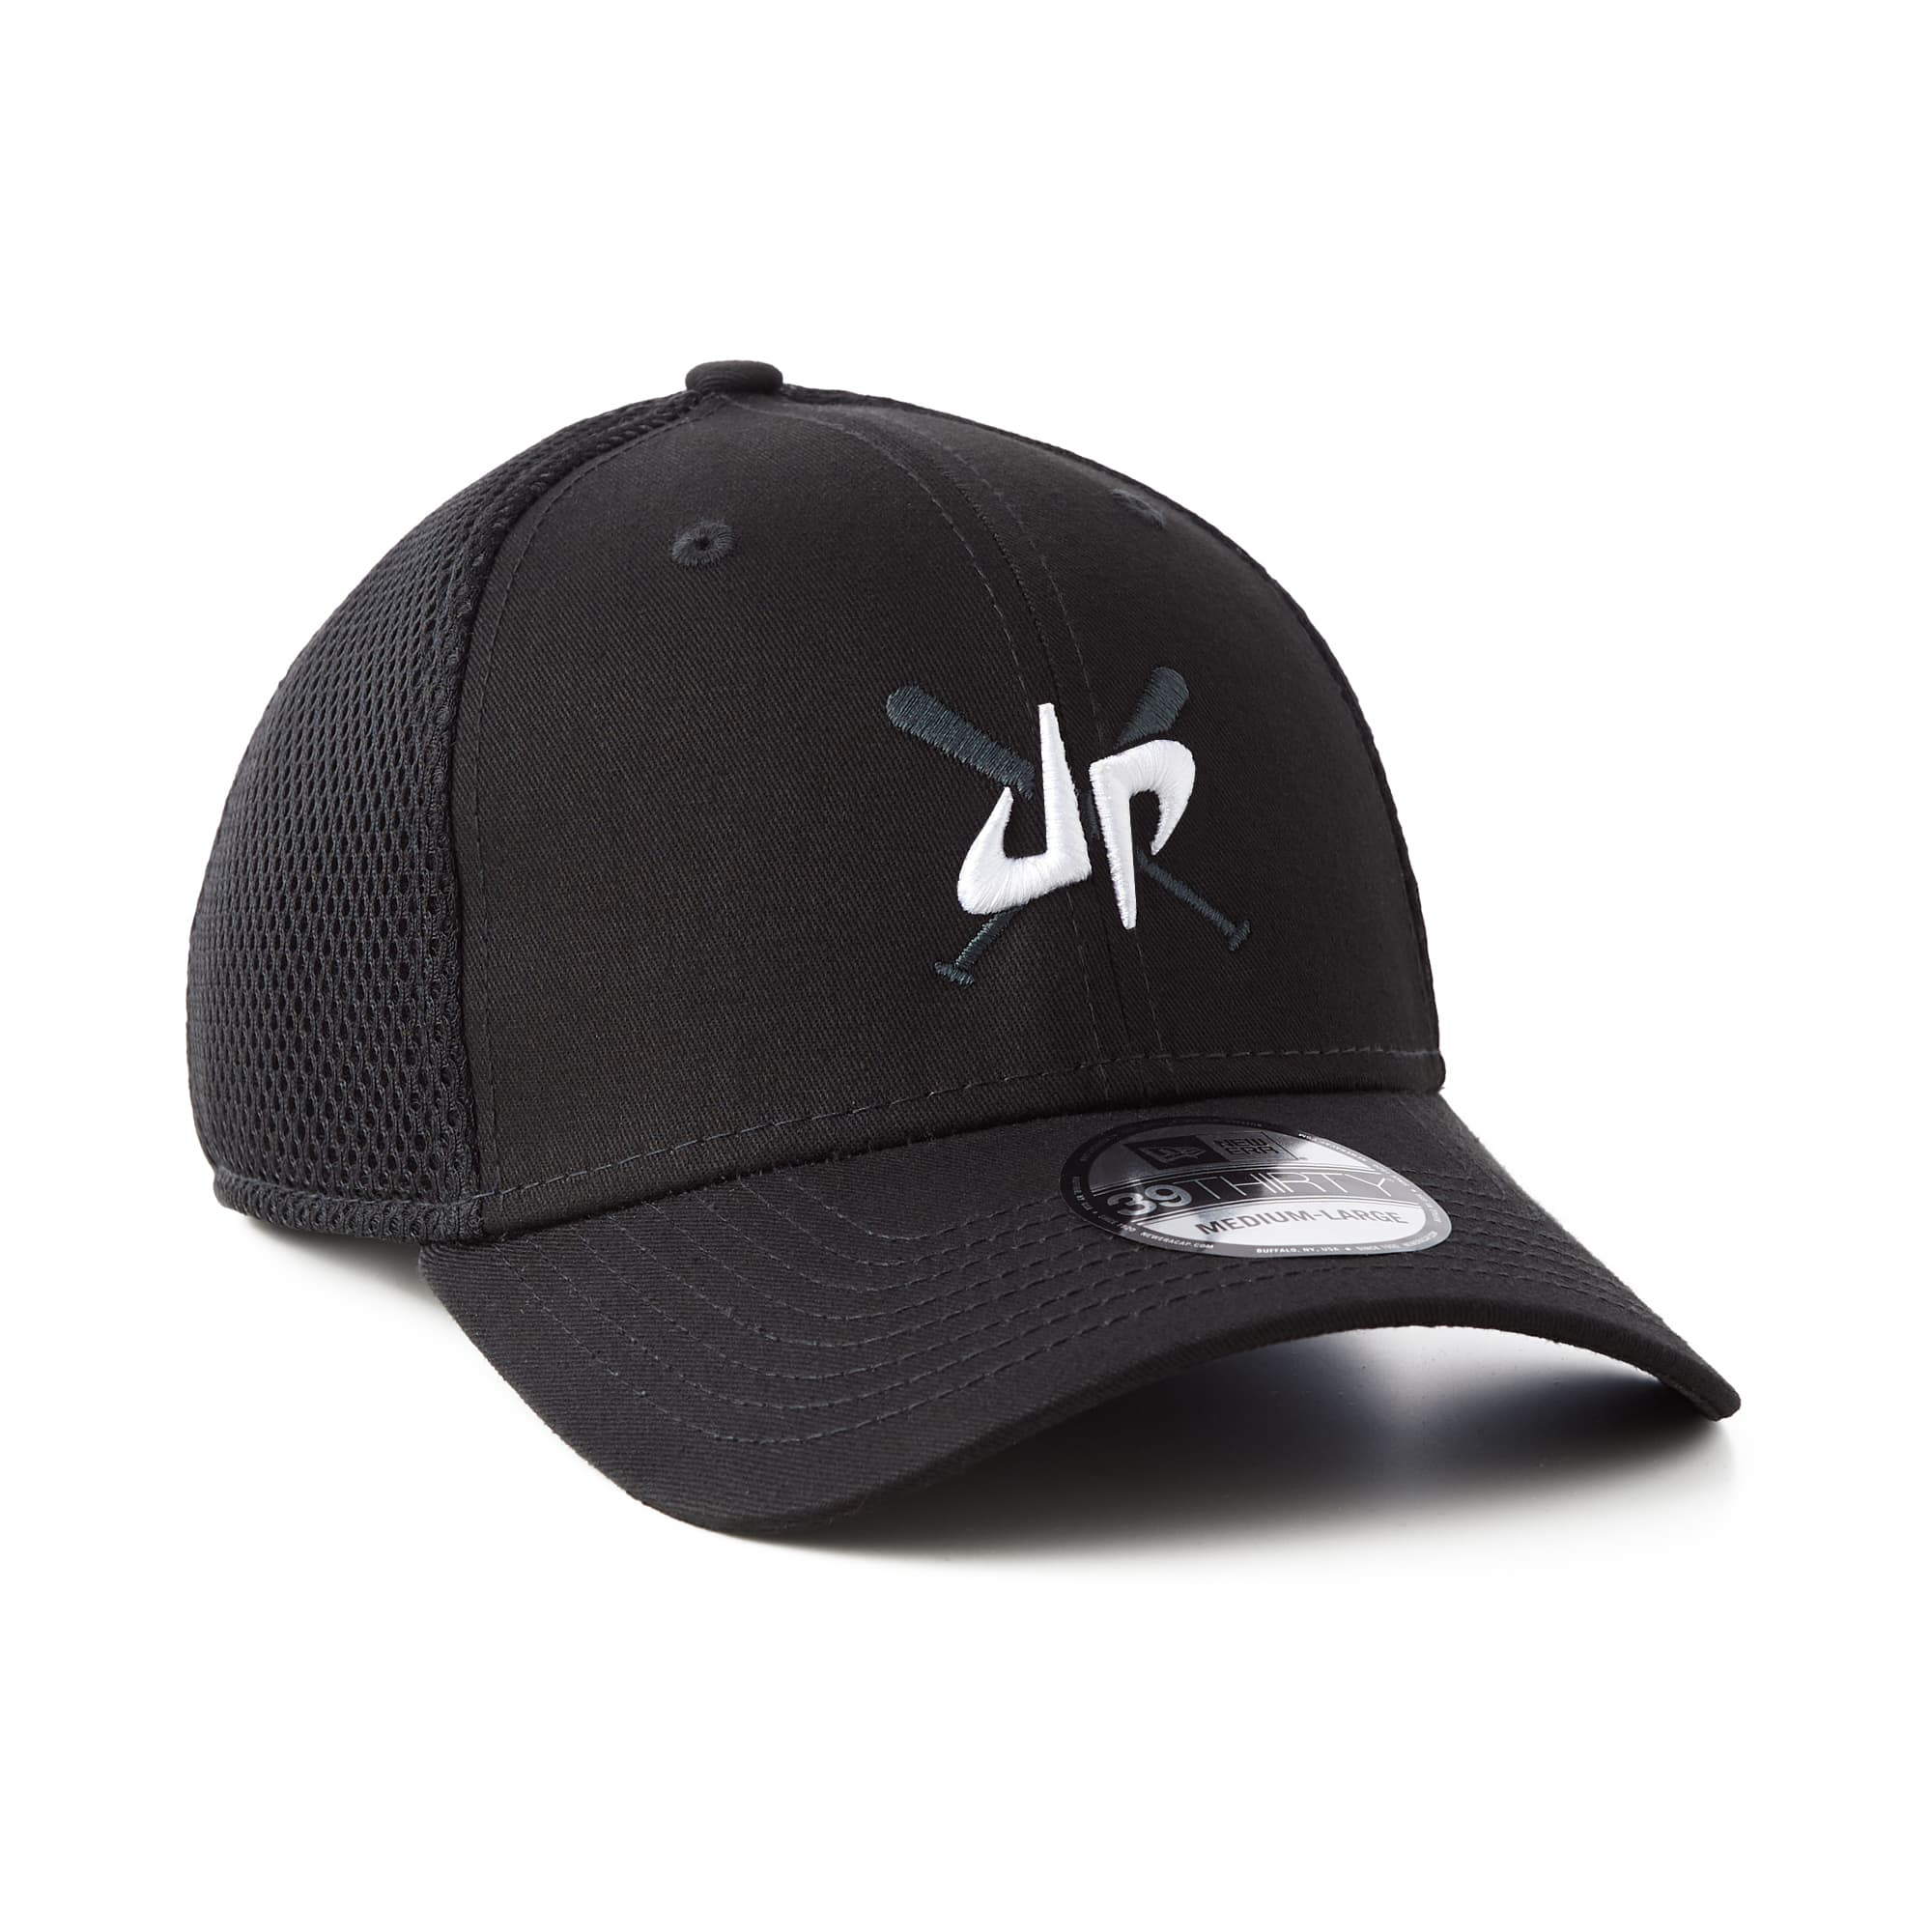 Baseball Legacy New Era 39Thirty Stretch Fit Hat